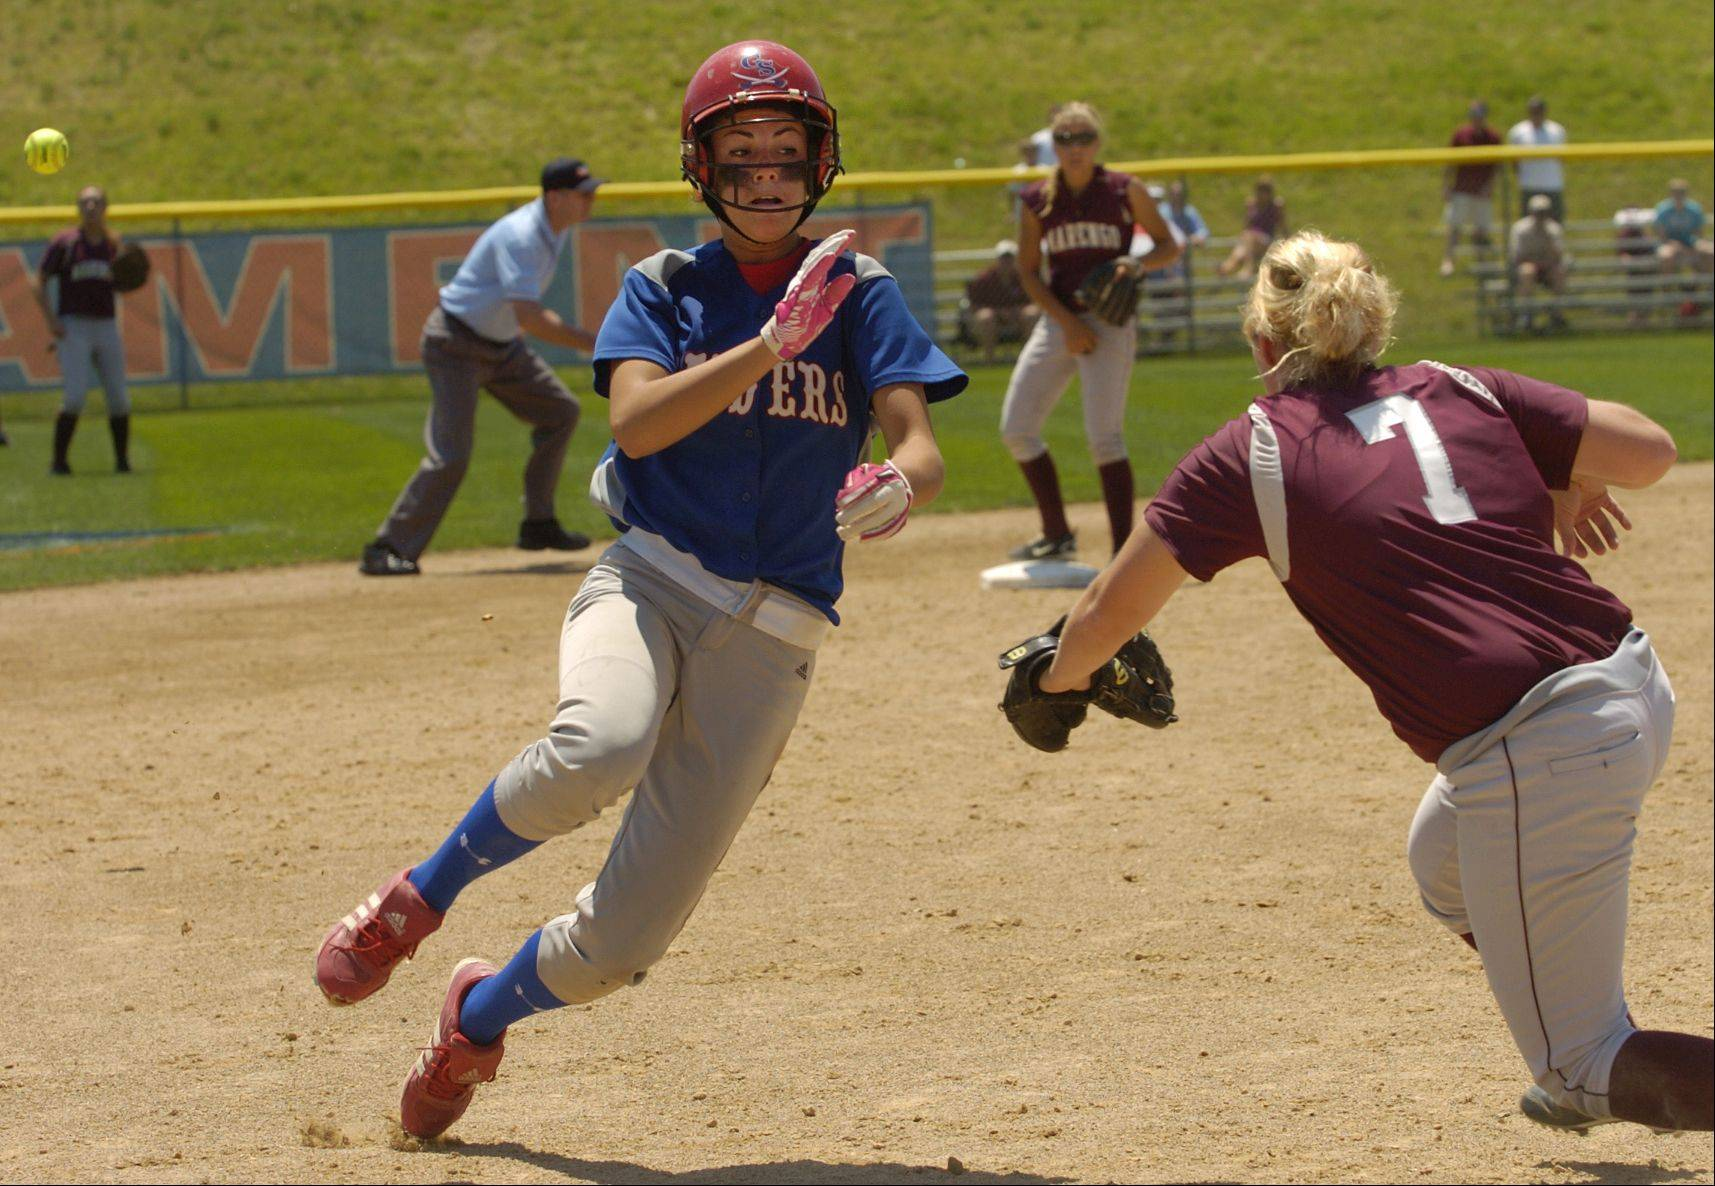 Danielle Chitkowski avoids a tag at third base later scoring the second run of the game during Class 3A state softball final between Marengo and Glenbard South.